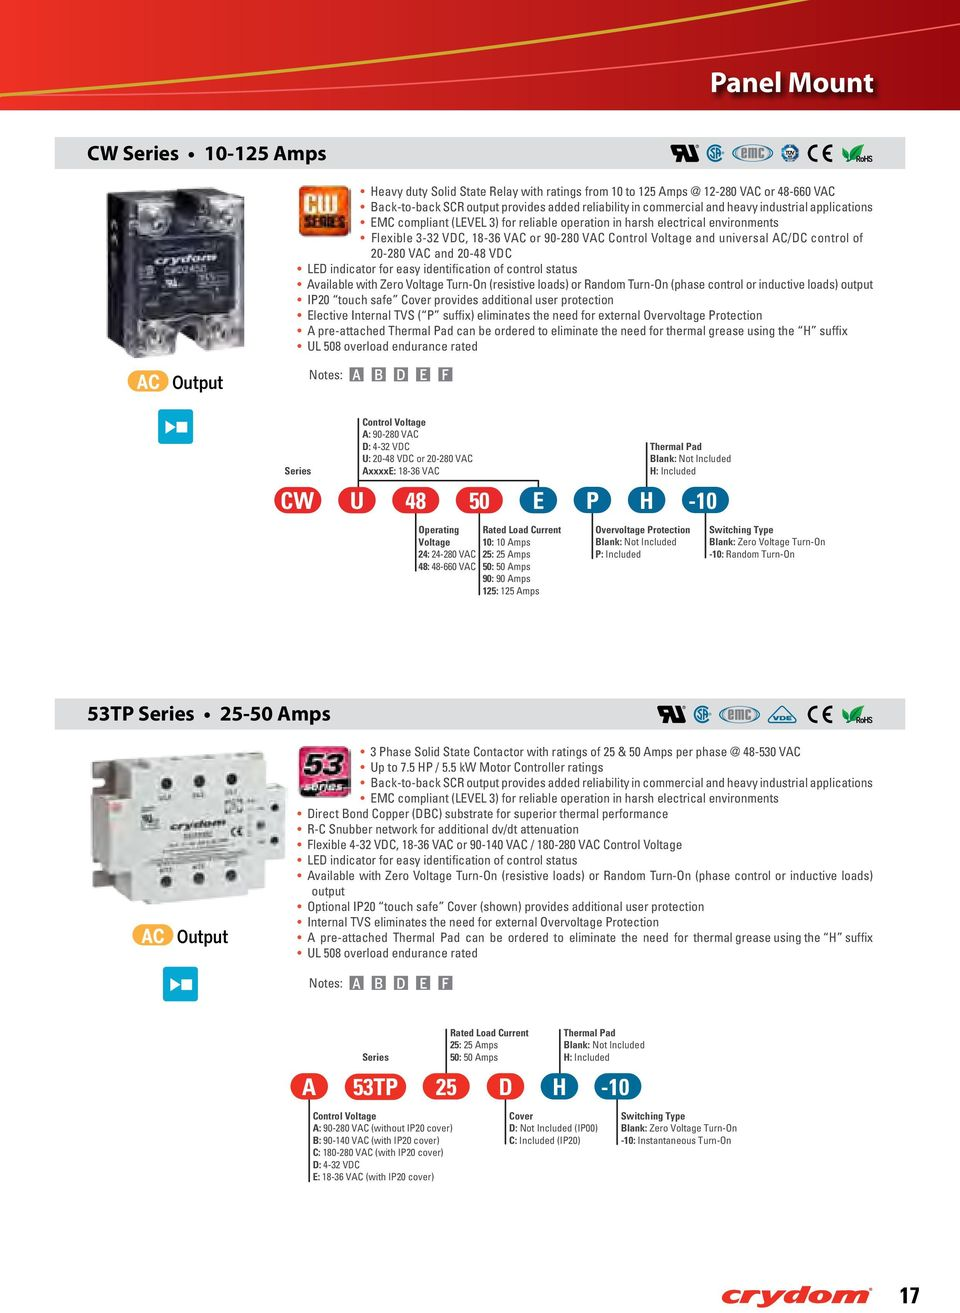 loads) output IP20 touch safe Cover provides additional user protection Elective Internal TVS ( P suffix) eliminates the need for external Overvoltage Protection A pre-attached Thermal Pad can be